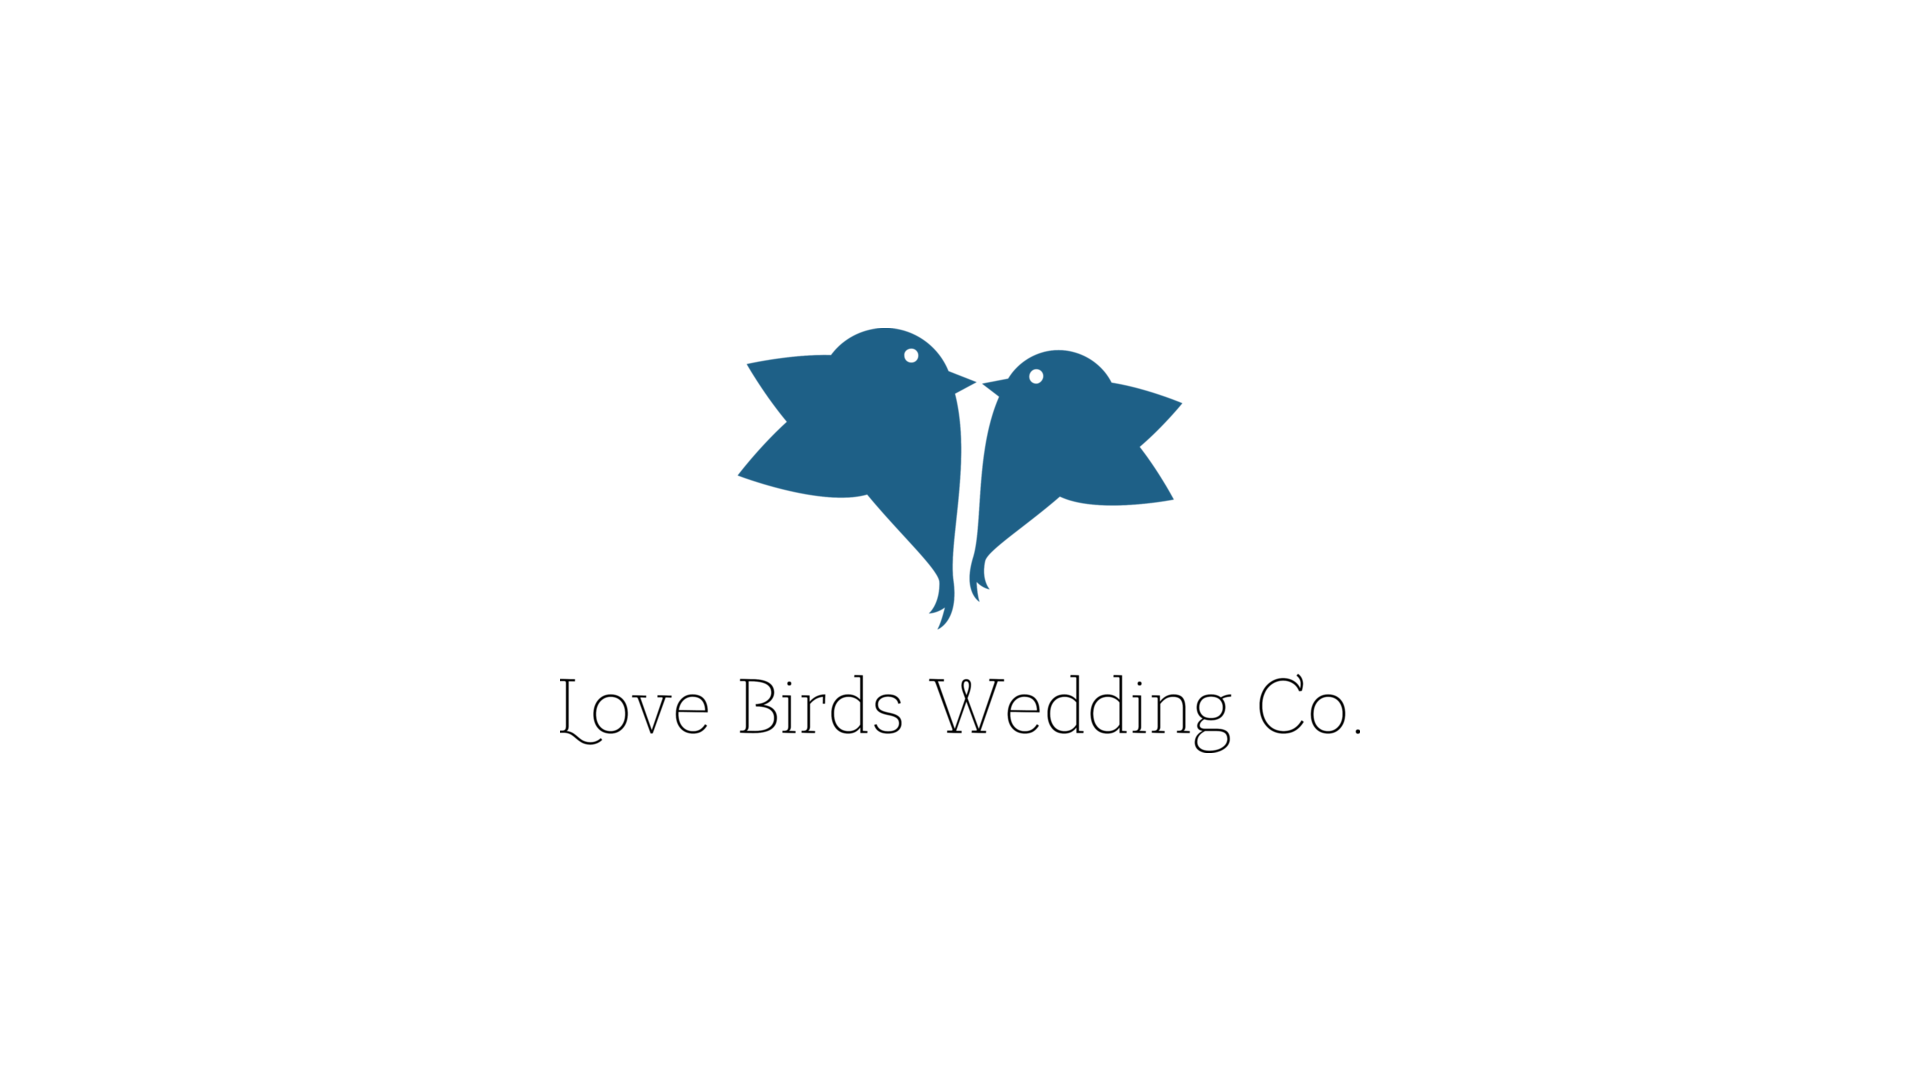 Wedding Planner | Lovebirds Wedding Co  | Utica, NY